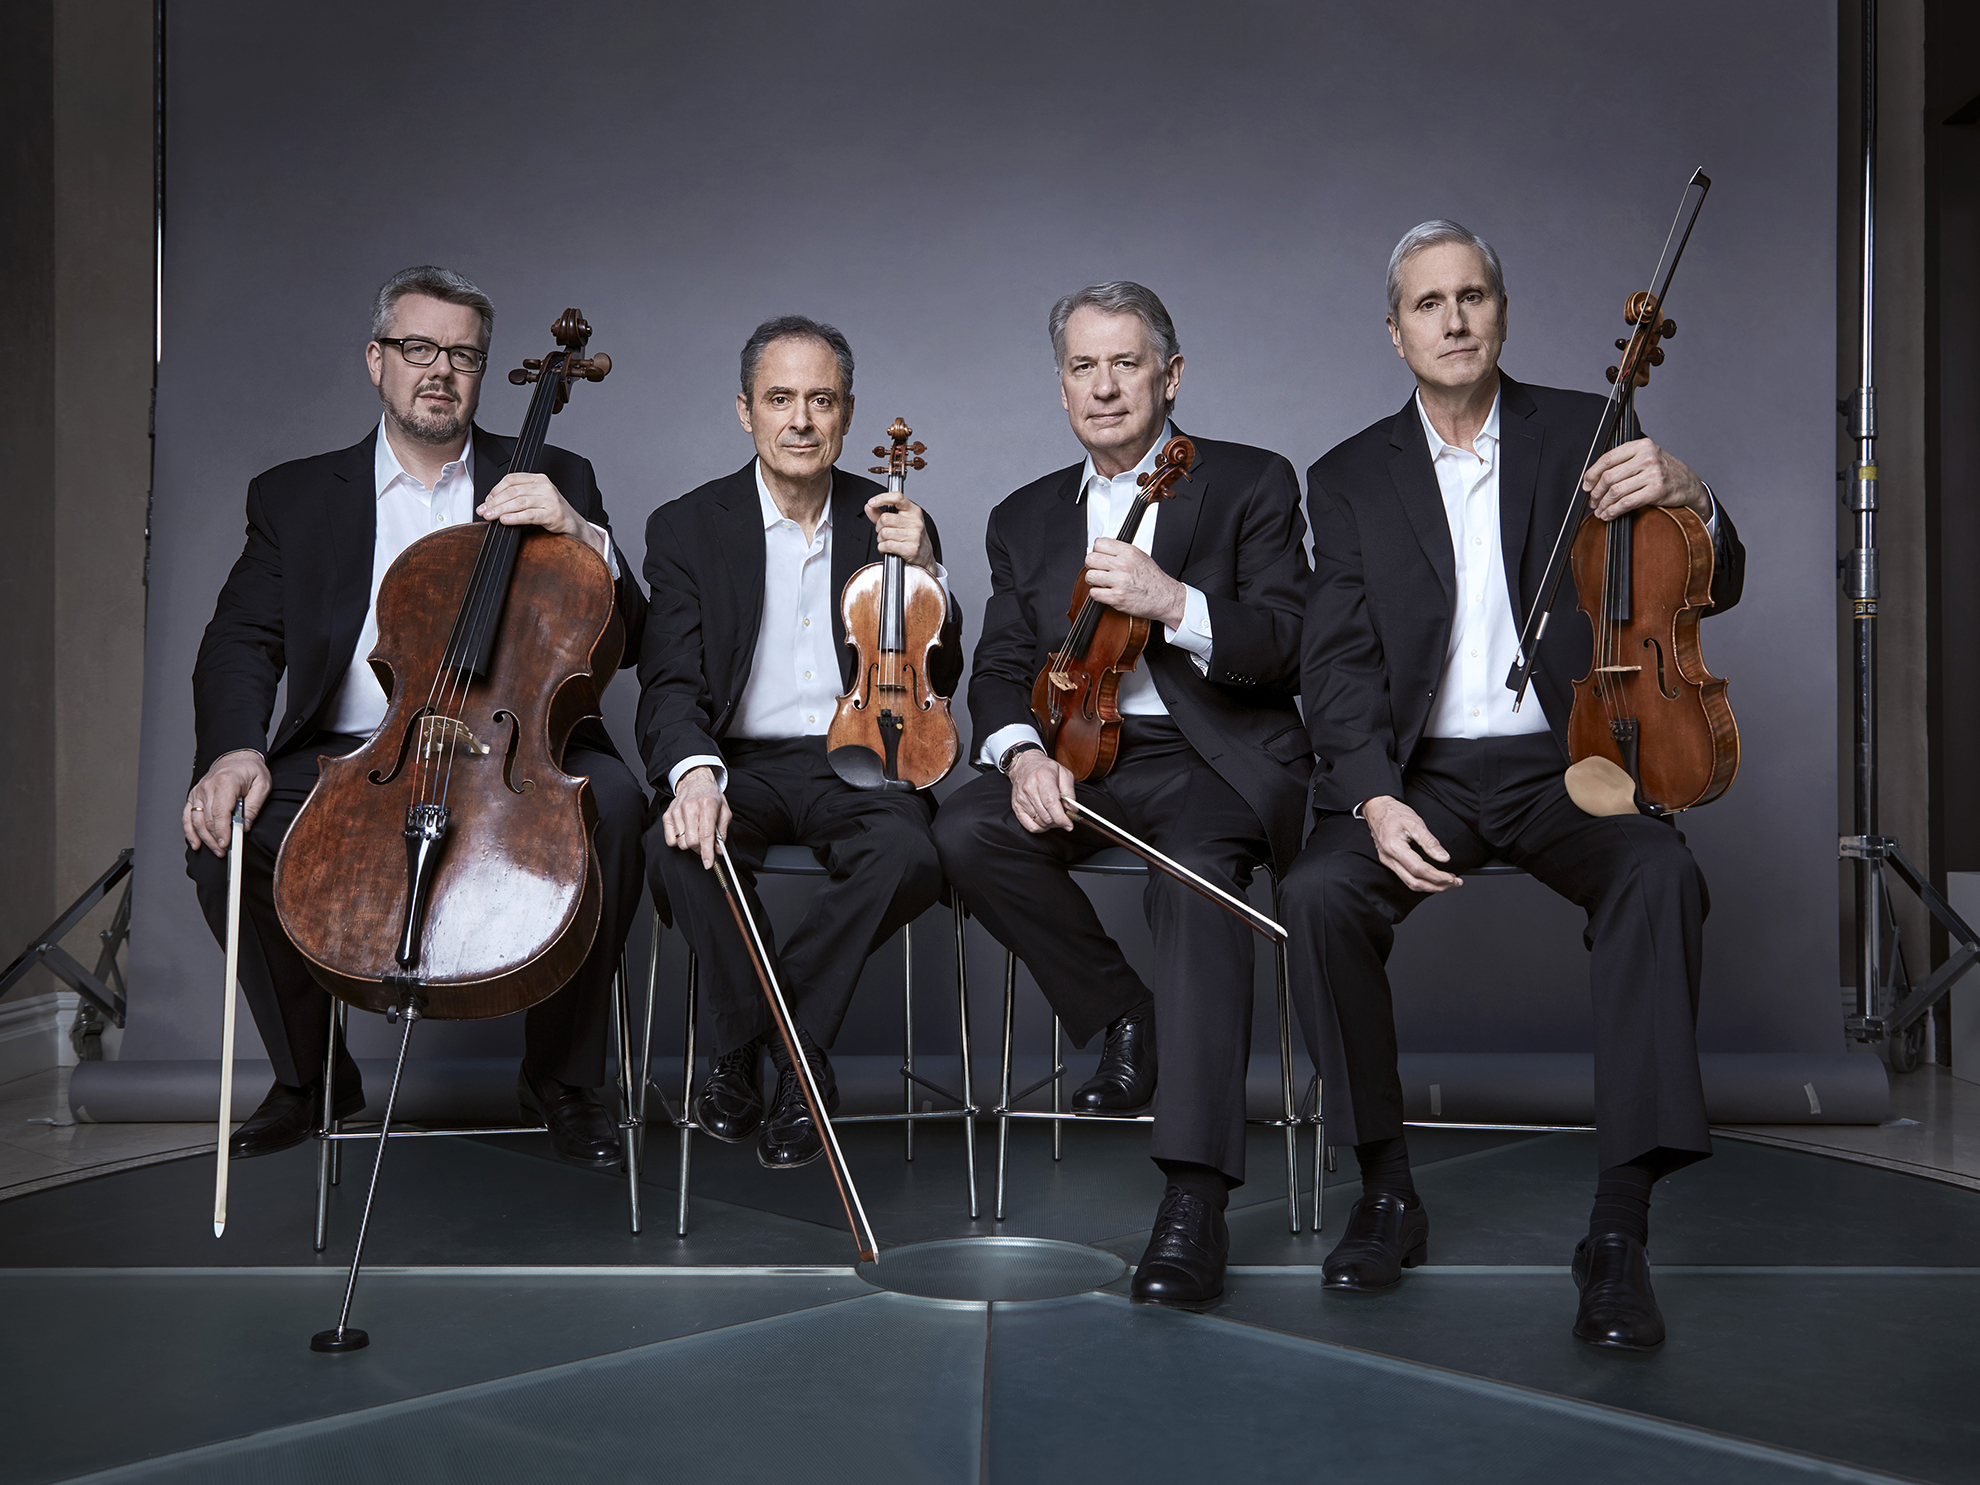 EMERSON STRING QUARTET   Eugene Drucker - violin, Philip Setzer - violin, Larry Dutton - viola, Paul Watkins - cello